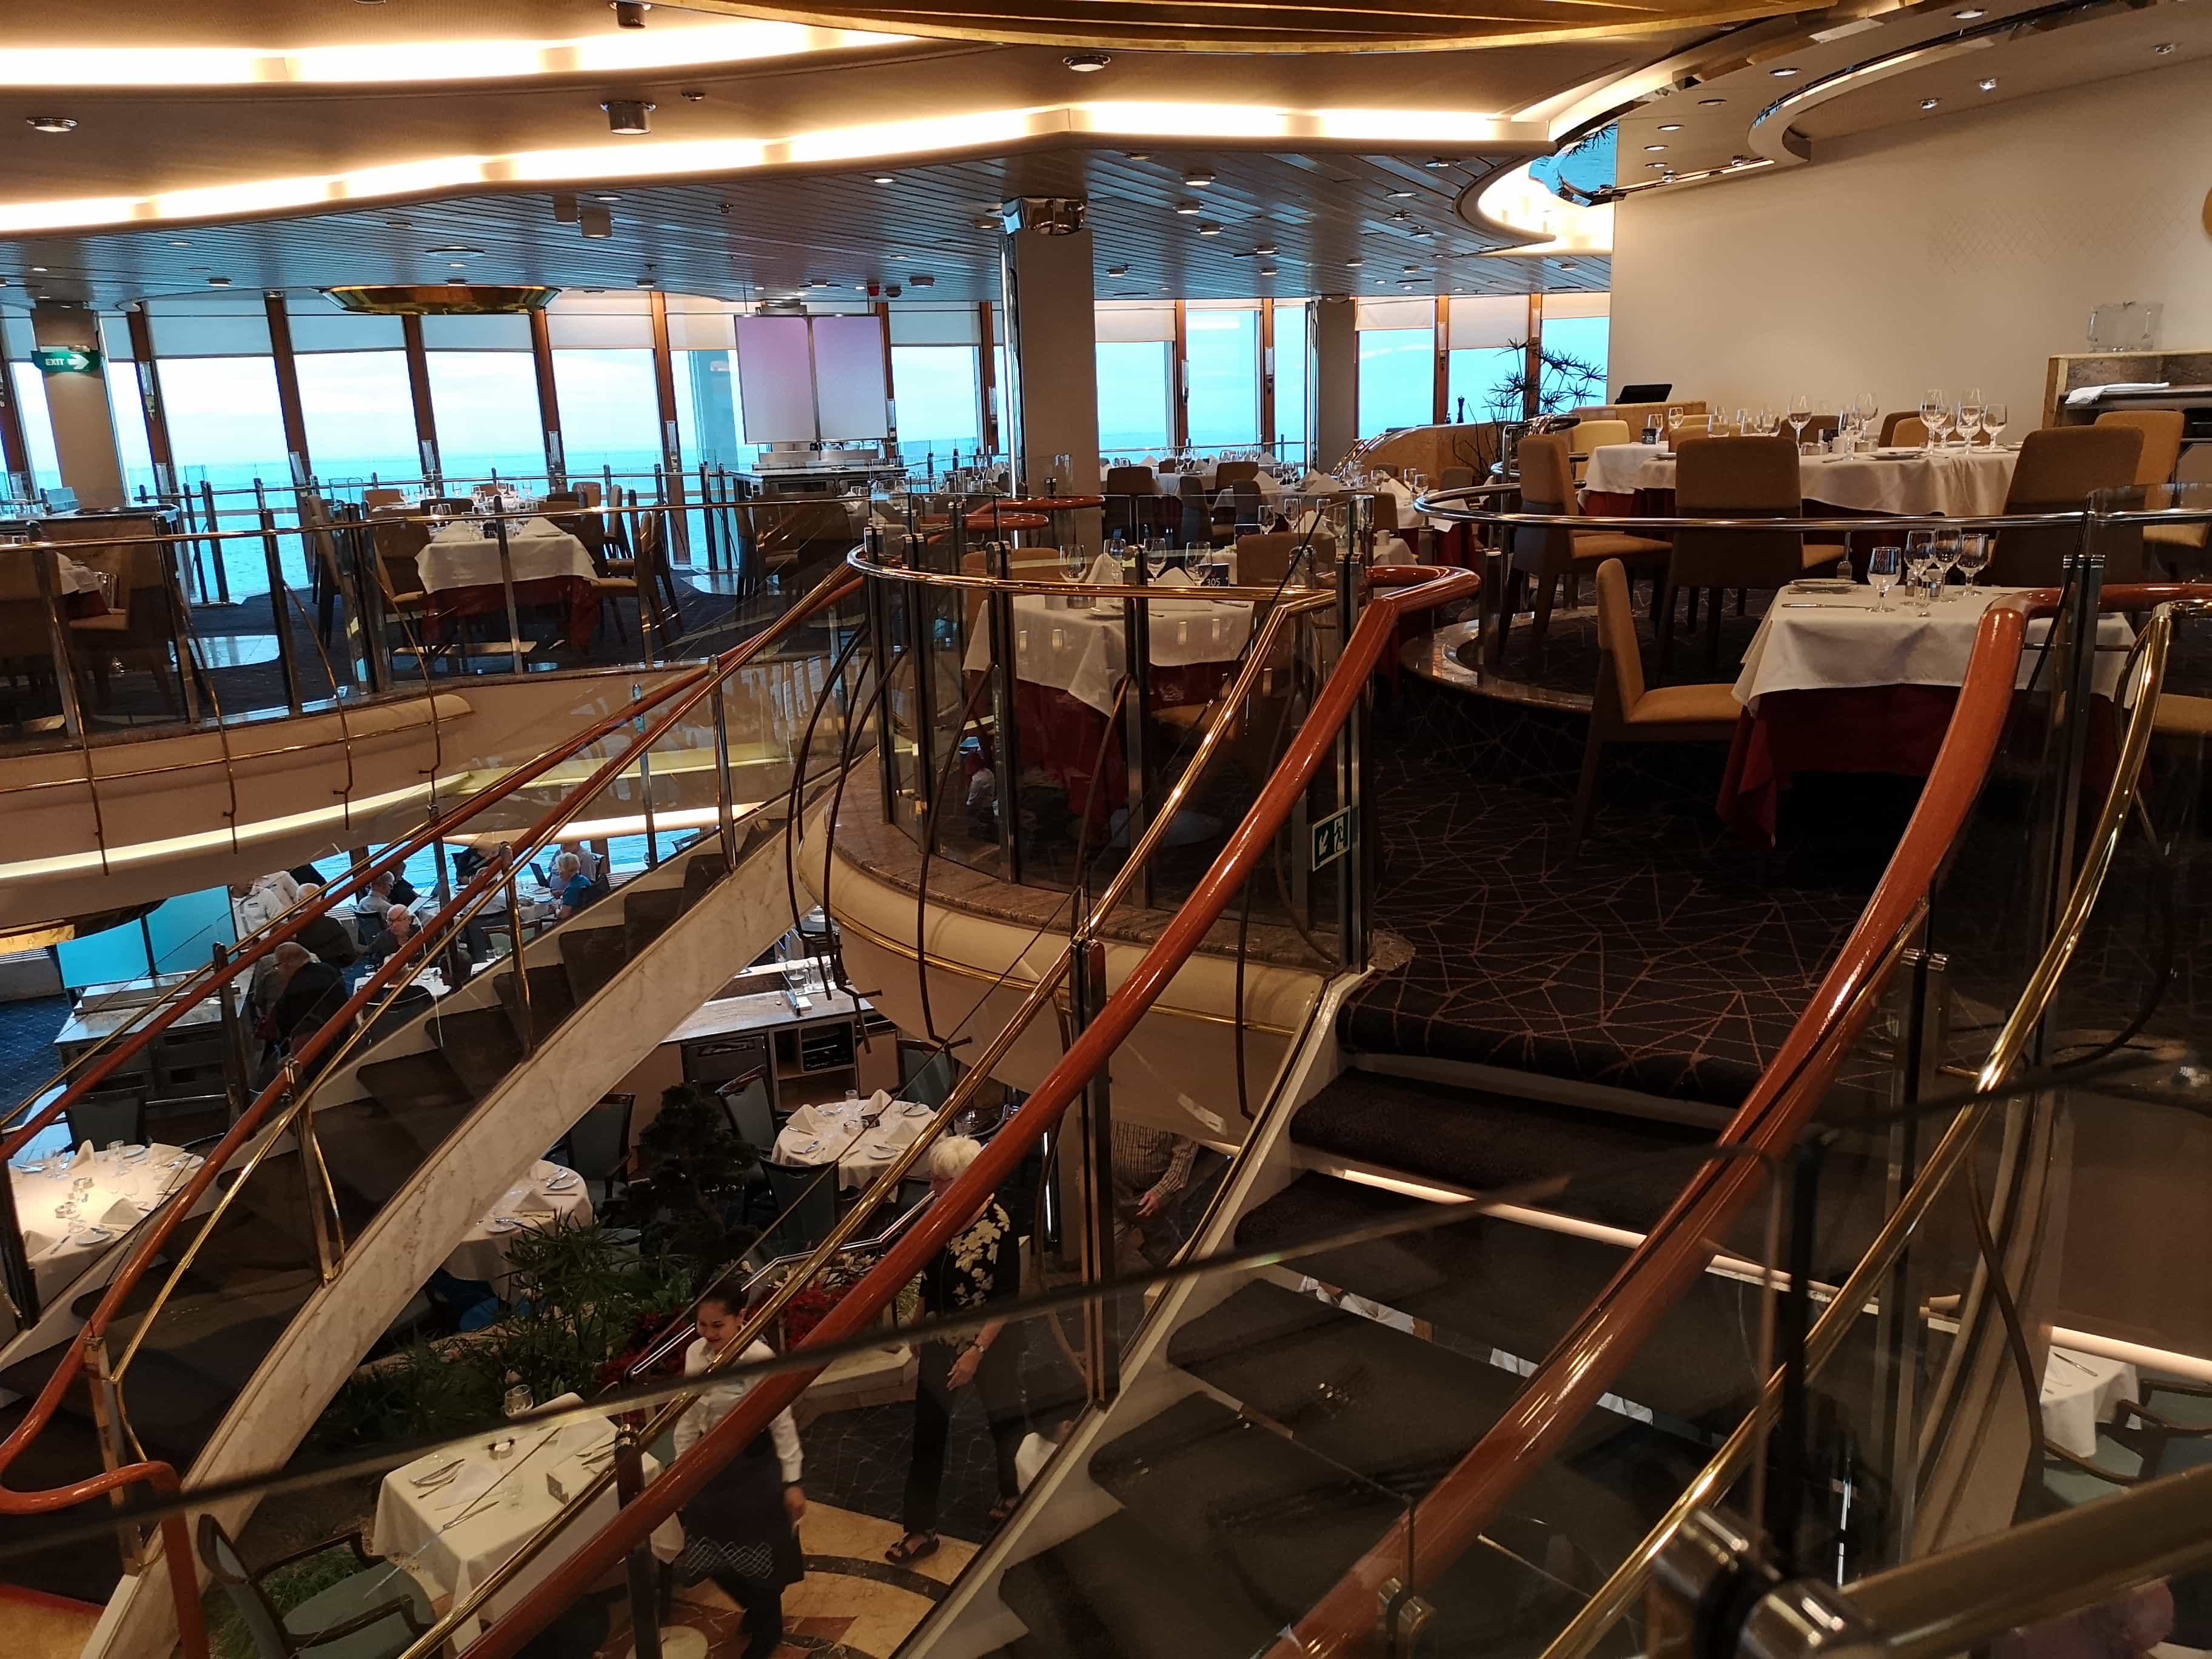 Marella Discovery Main Dining Room Gallery 47 degrees top level